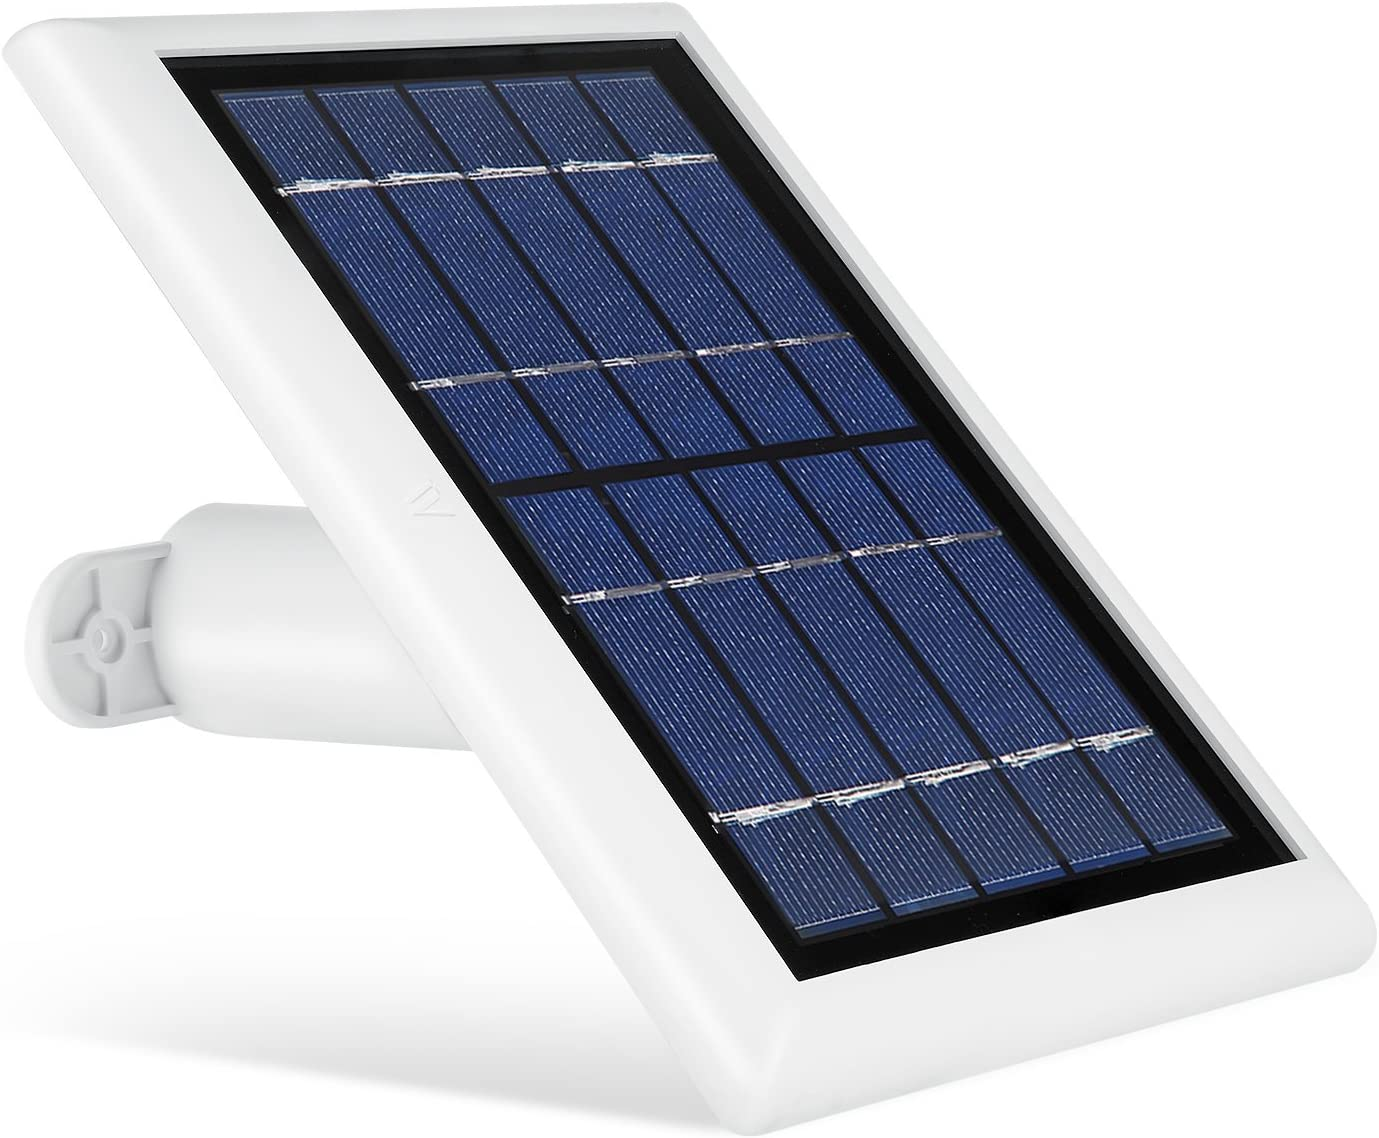 Solar Panel for Logitech Circle 2, Power Your Home Security Camera Continuously with Our Solar Charger – by Wasserstein (White) (NOT compatible with the Logitech Circle 2 (Wired) and Logitech Circle 1